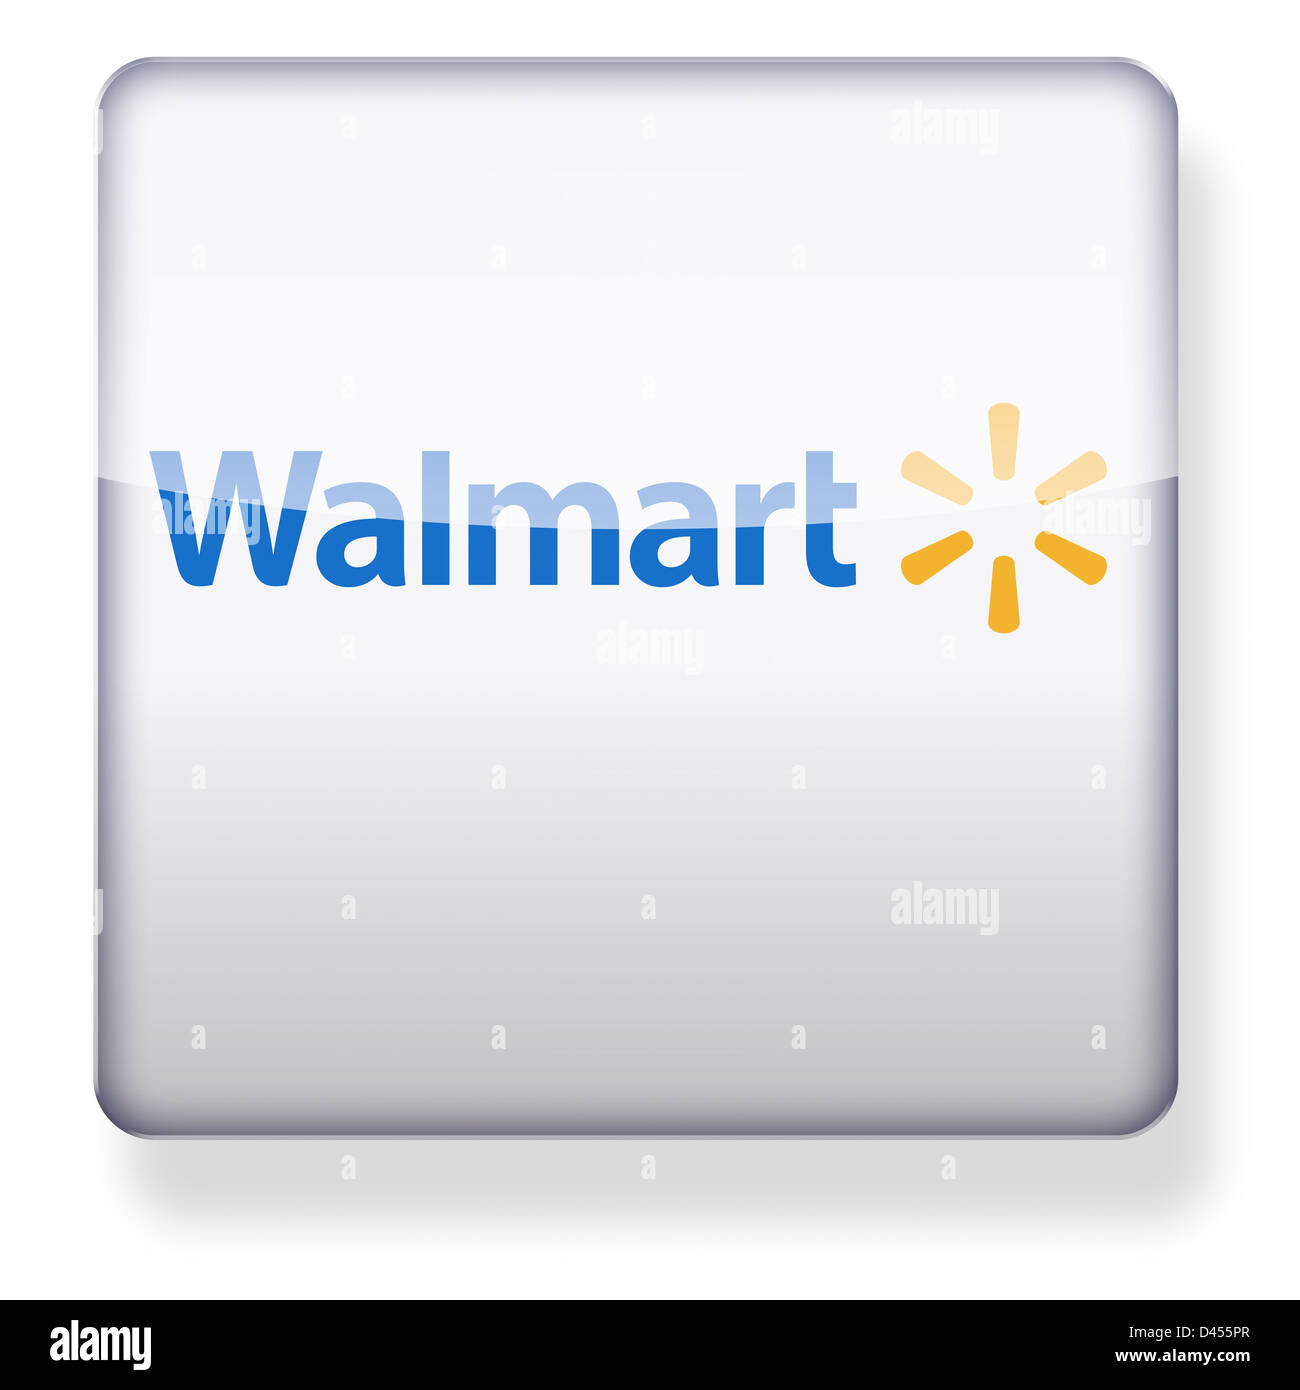 walmart logo as an app icon clipping path included stock